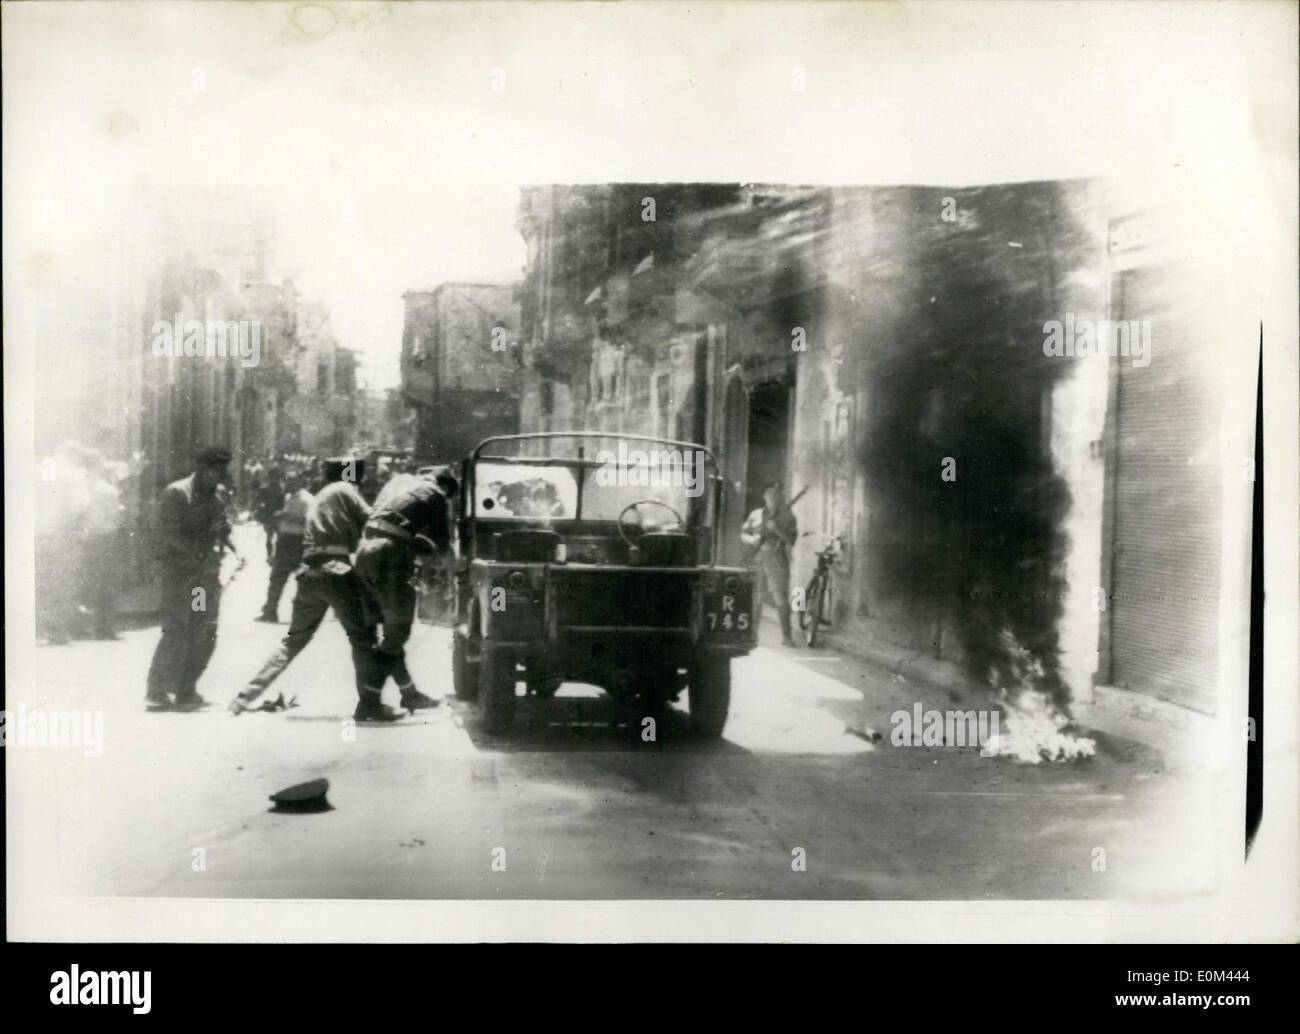 May 05, 1953 - Bombs thrown in Cyprus.: A British soldier was killed by a bomb in Nicosia today, as troops fought to disperse schoolgirl demonstrators. Two Greek Cypriots were injured when one of the bombs was thrown at an Army patrol car.A police officer was also injured. Photo shows the scene in Ledra Street, Nicosia today, showing an Army patrol car on fire - as a result of a bomb thrown by demonstrators. - Stock Image